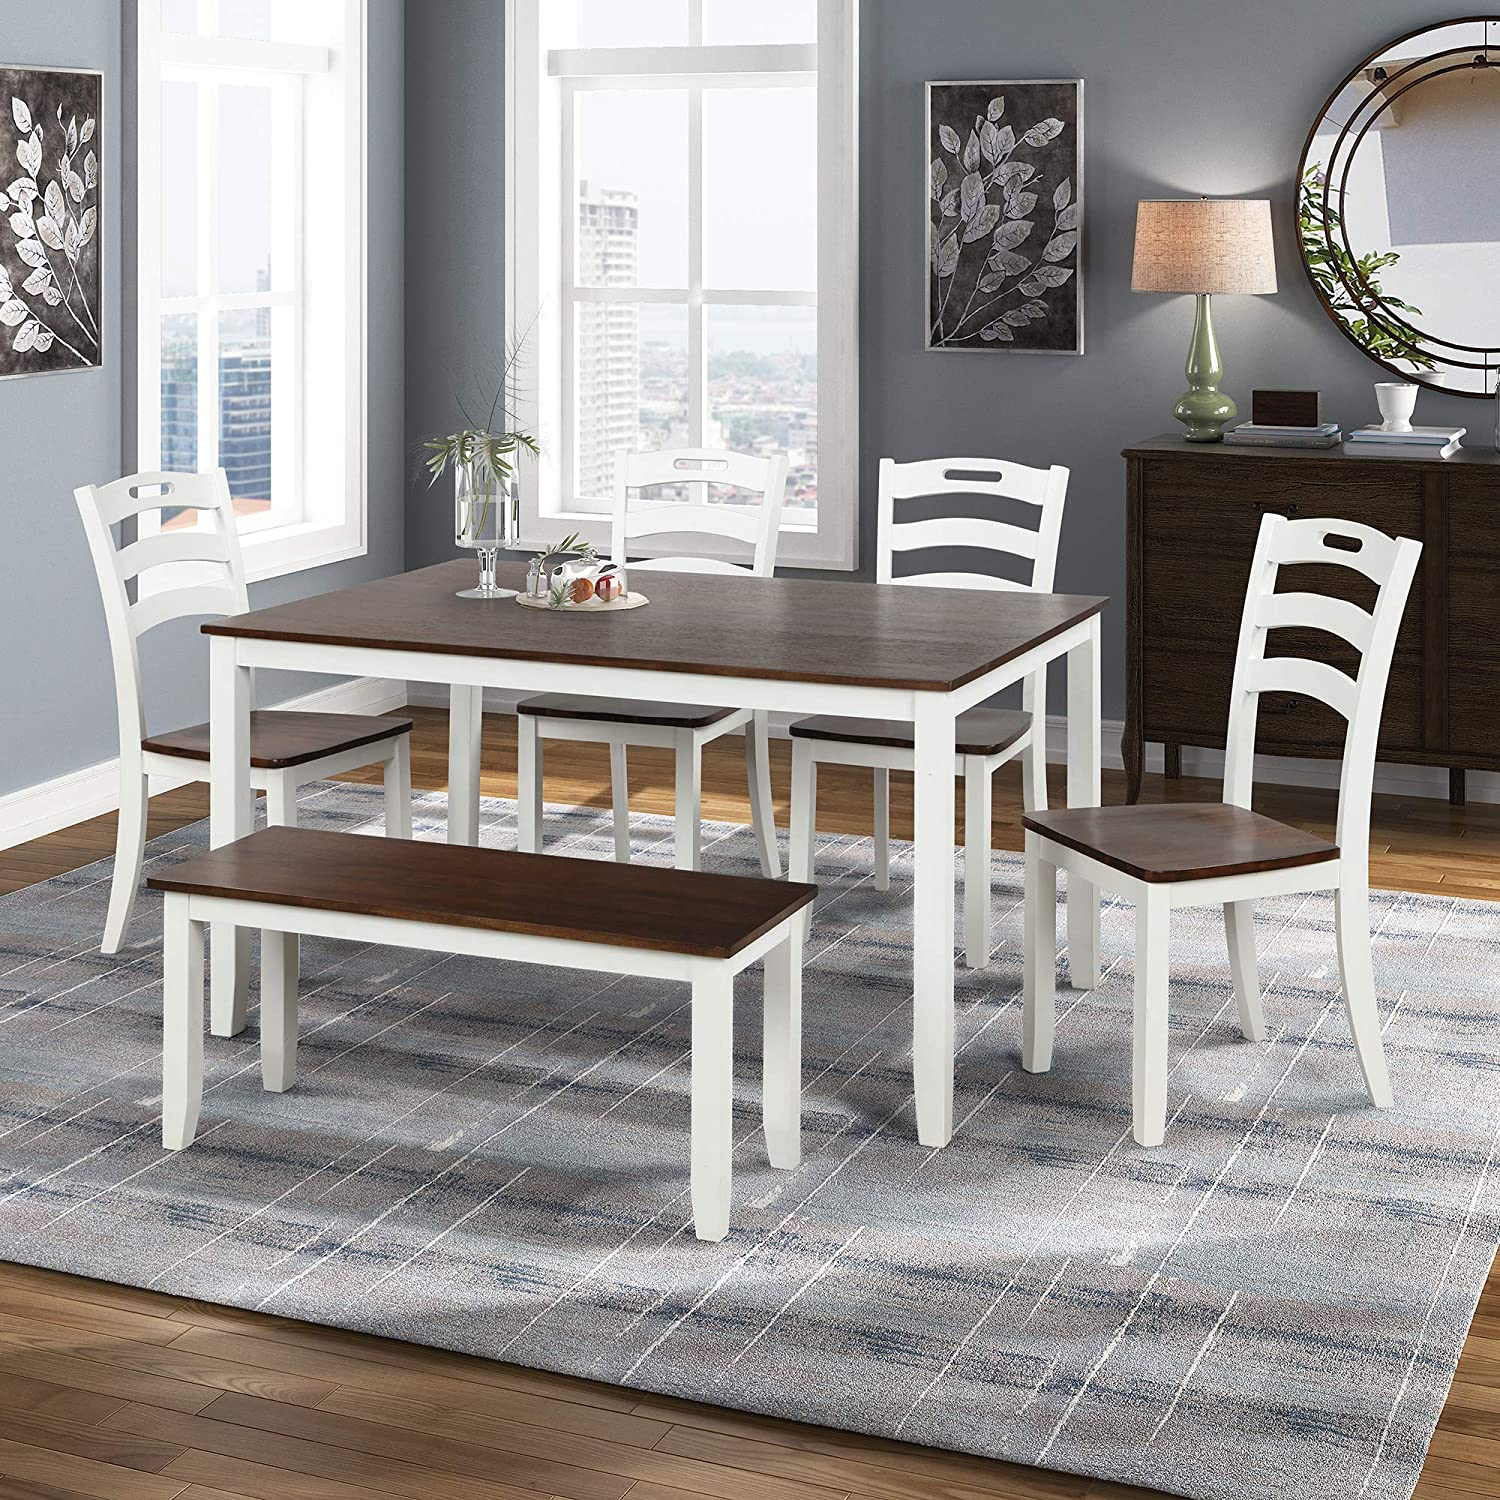 Merax Dining Table Sets 6 Piece, White And Wood Dining Room Sets